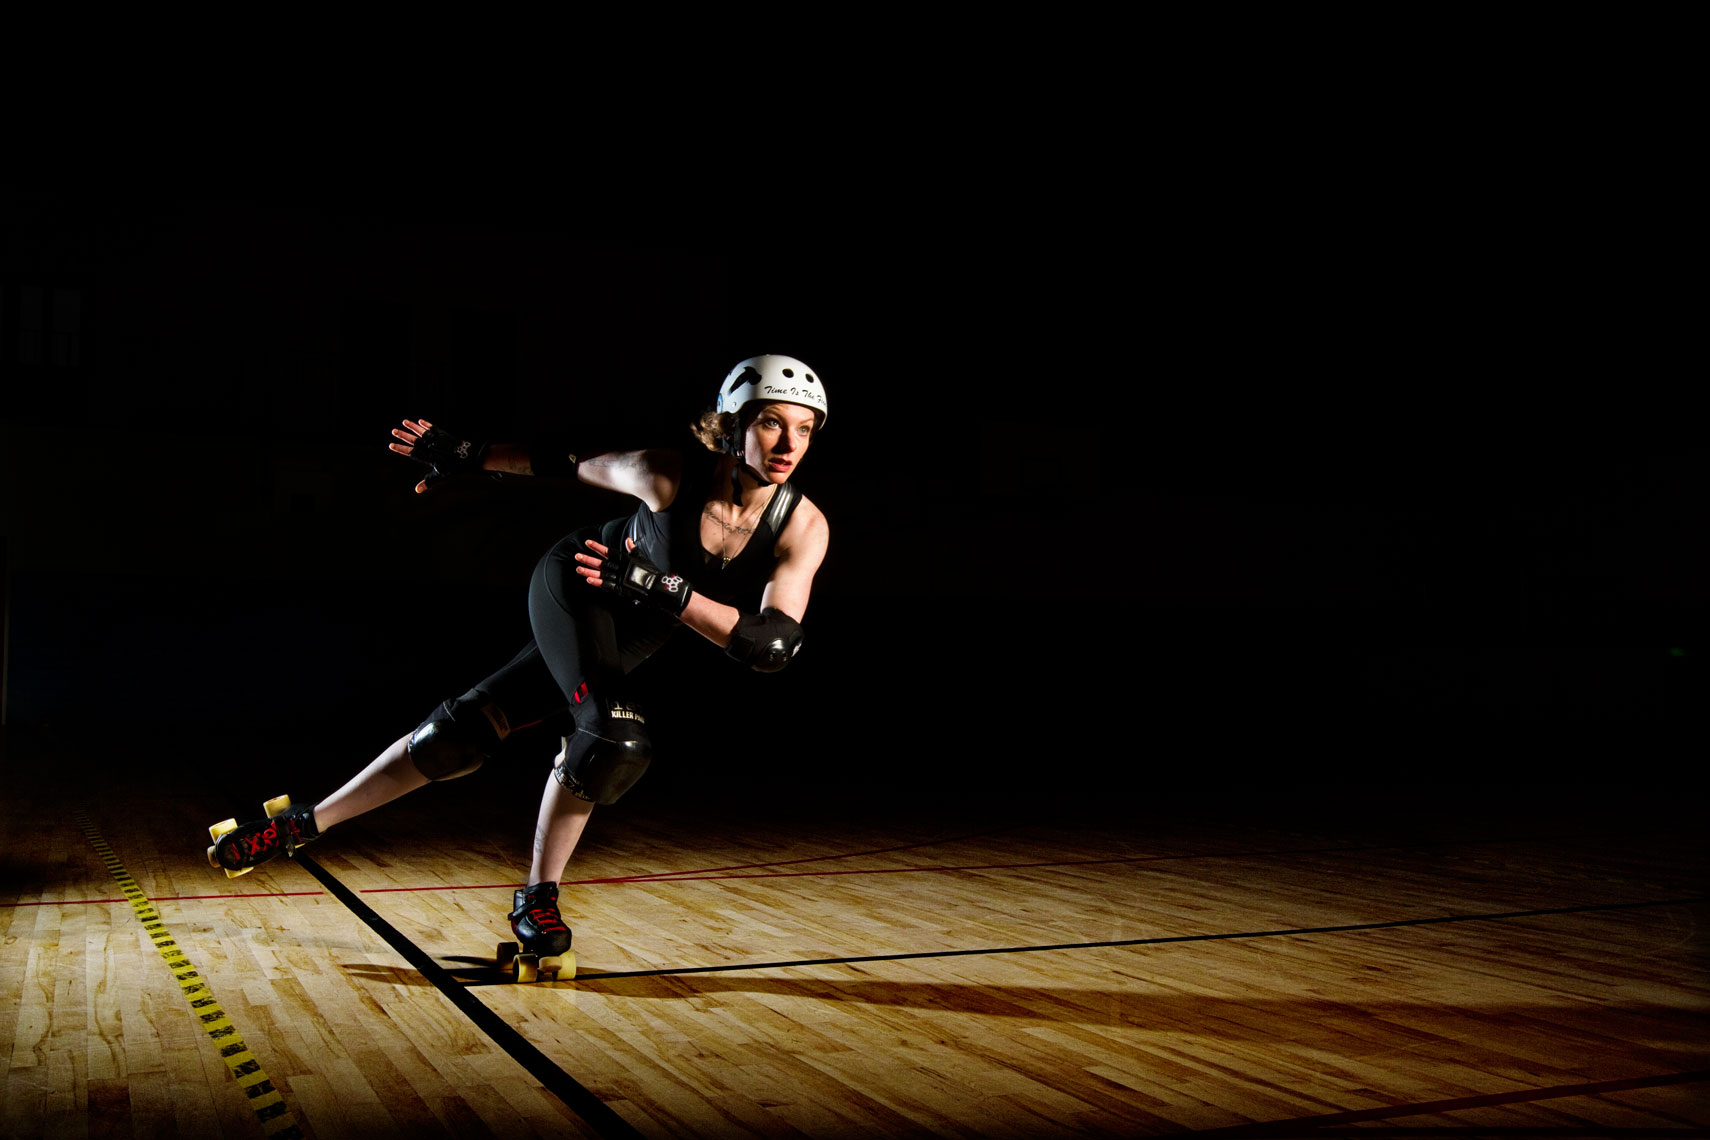 roller derby girl races with helmet and black suit